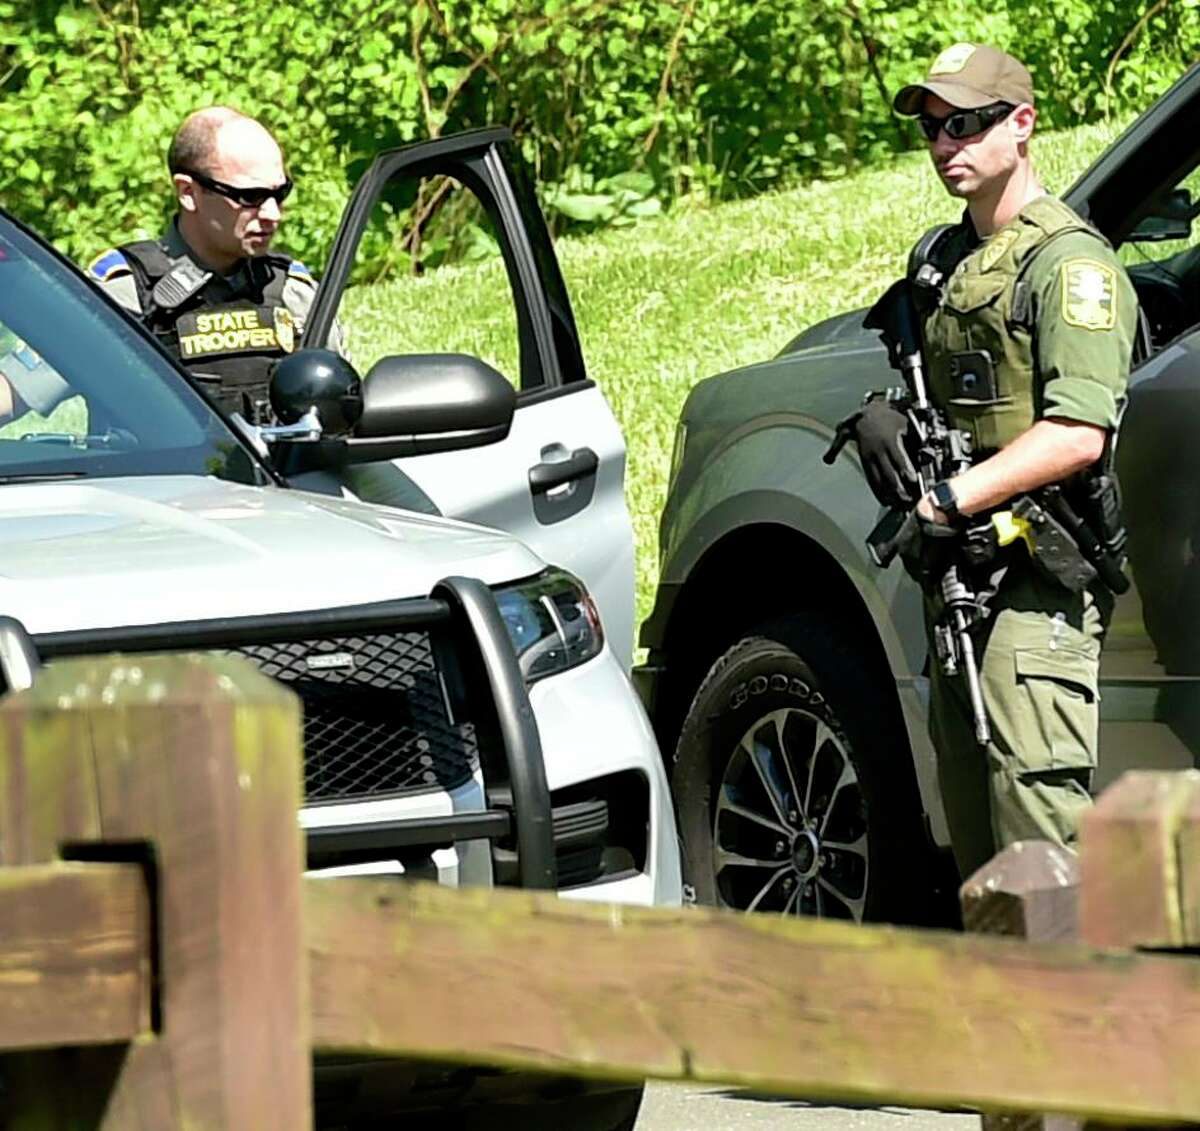 Derby, Connecticut - Sunday, May 24, 2020: Connecticut D.E.E.P Police officer, right, talks with a State Trooper during the search for suspected murderer Peter Manfredonia, 23, described as armed and dangerous Sunday morning at Osbornedale State Park in Derby after a stolen vehicle linked to the suspect was found on Hawthorne Avenue near Cullens Hill Road in Derby. The area borders Osbornedale State Park.The discovery launched an extensive search of the park and on local streets and in neighborhoods near Osbornedale and Roosevelt Drive where law enforcement secured another crime scene thought to be connected to Manfredonia. State Police said Manfredonia is believed to be armed with pistol and long guns. Manfredonia is wanted in a homicide and serious assault in northeastern Connecticut.